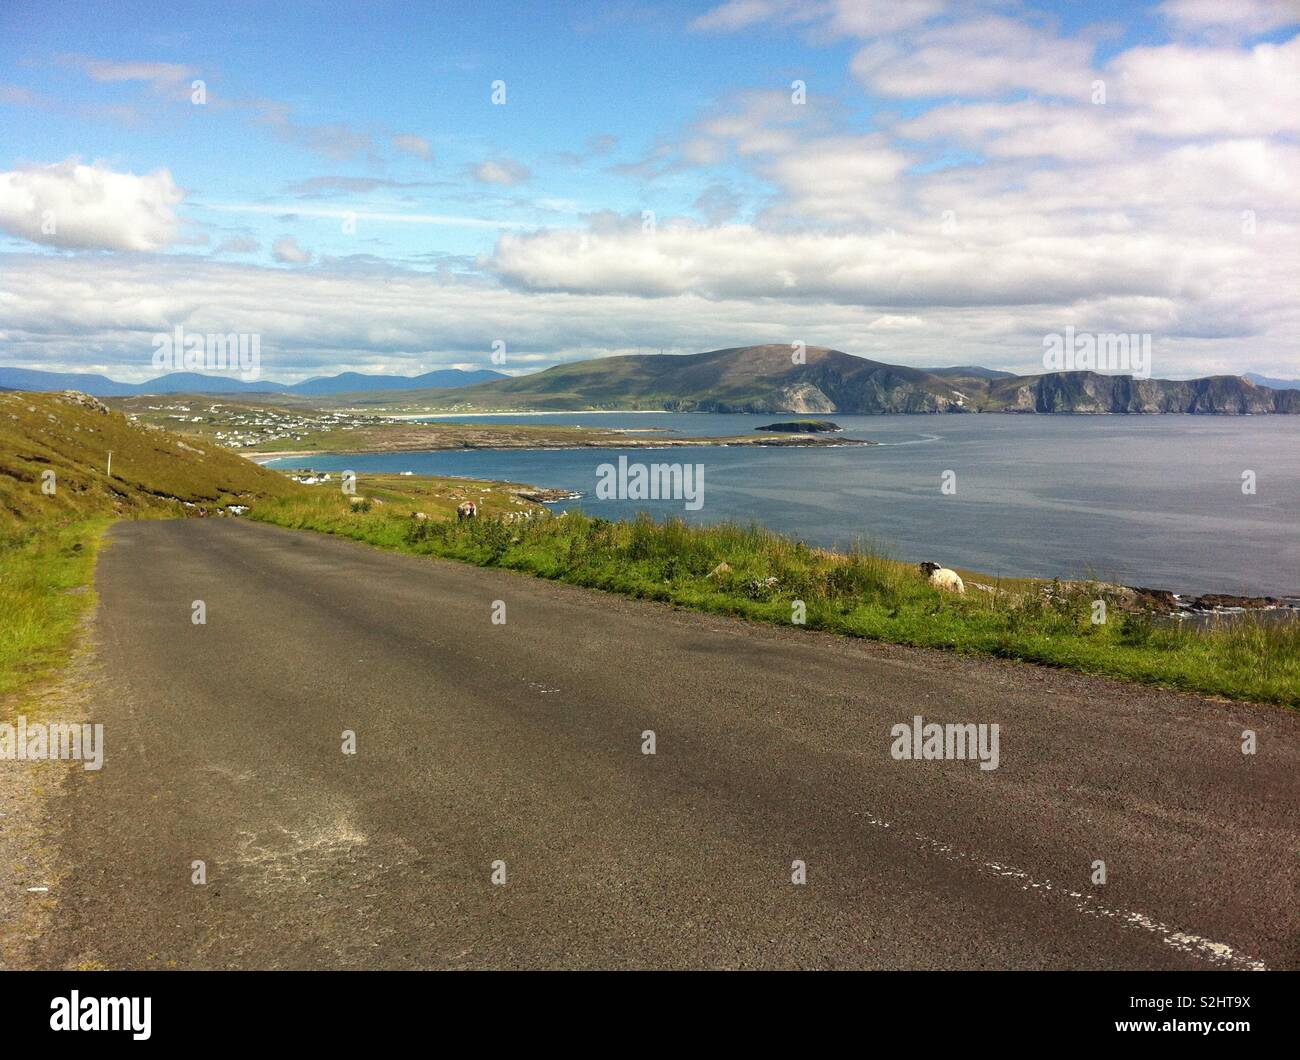 View from the roadside, Achill Island, County Mayo, Ireland. - Stock Image